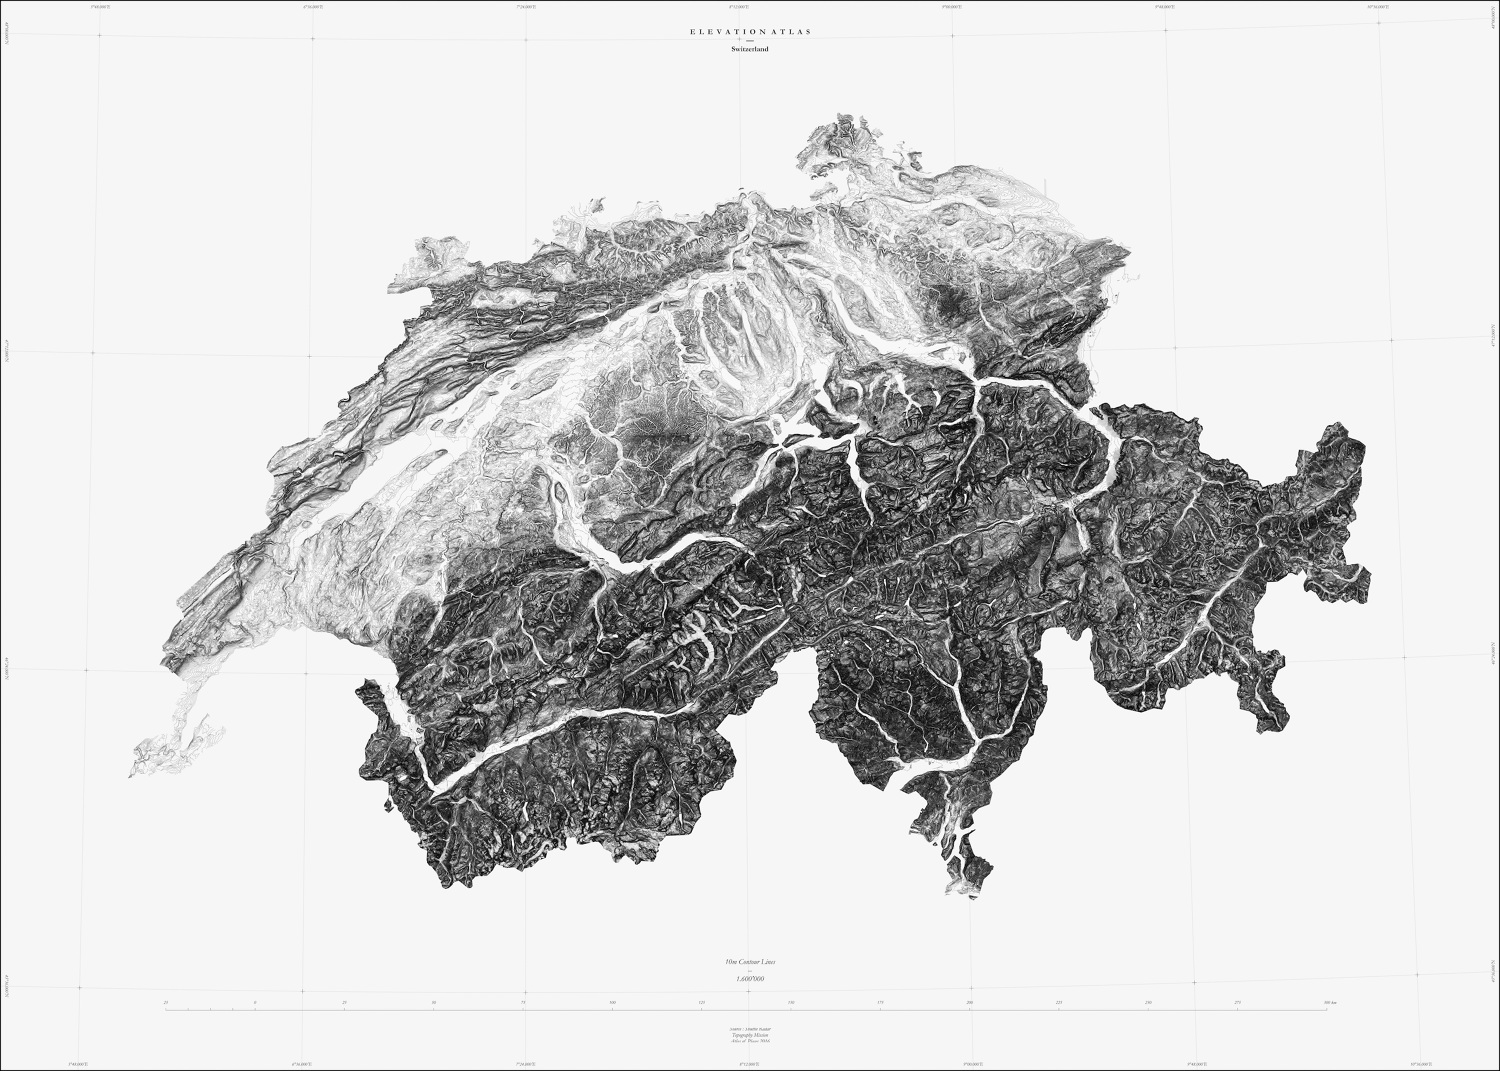 Muriz Djurdjevic and Thomas Paturet, ATLAS OF PLACES. Switzerland Collection